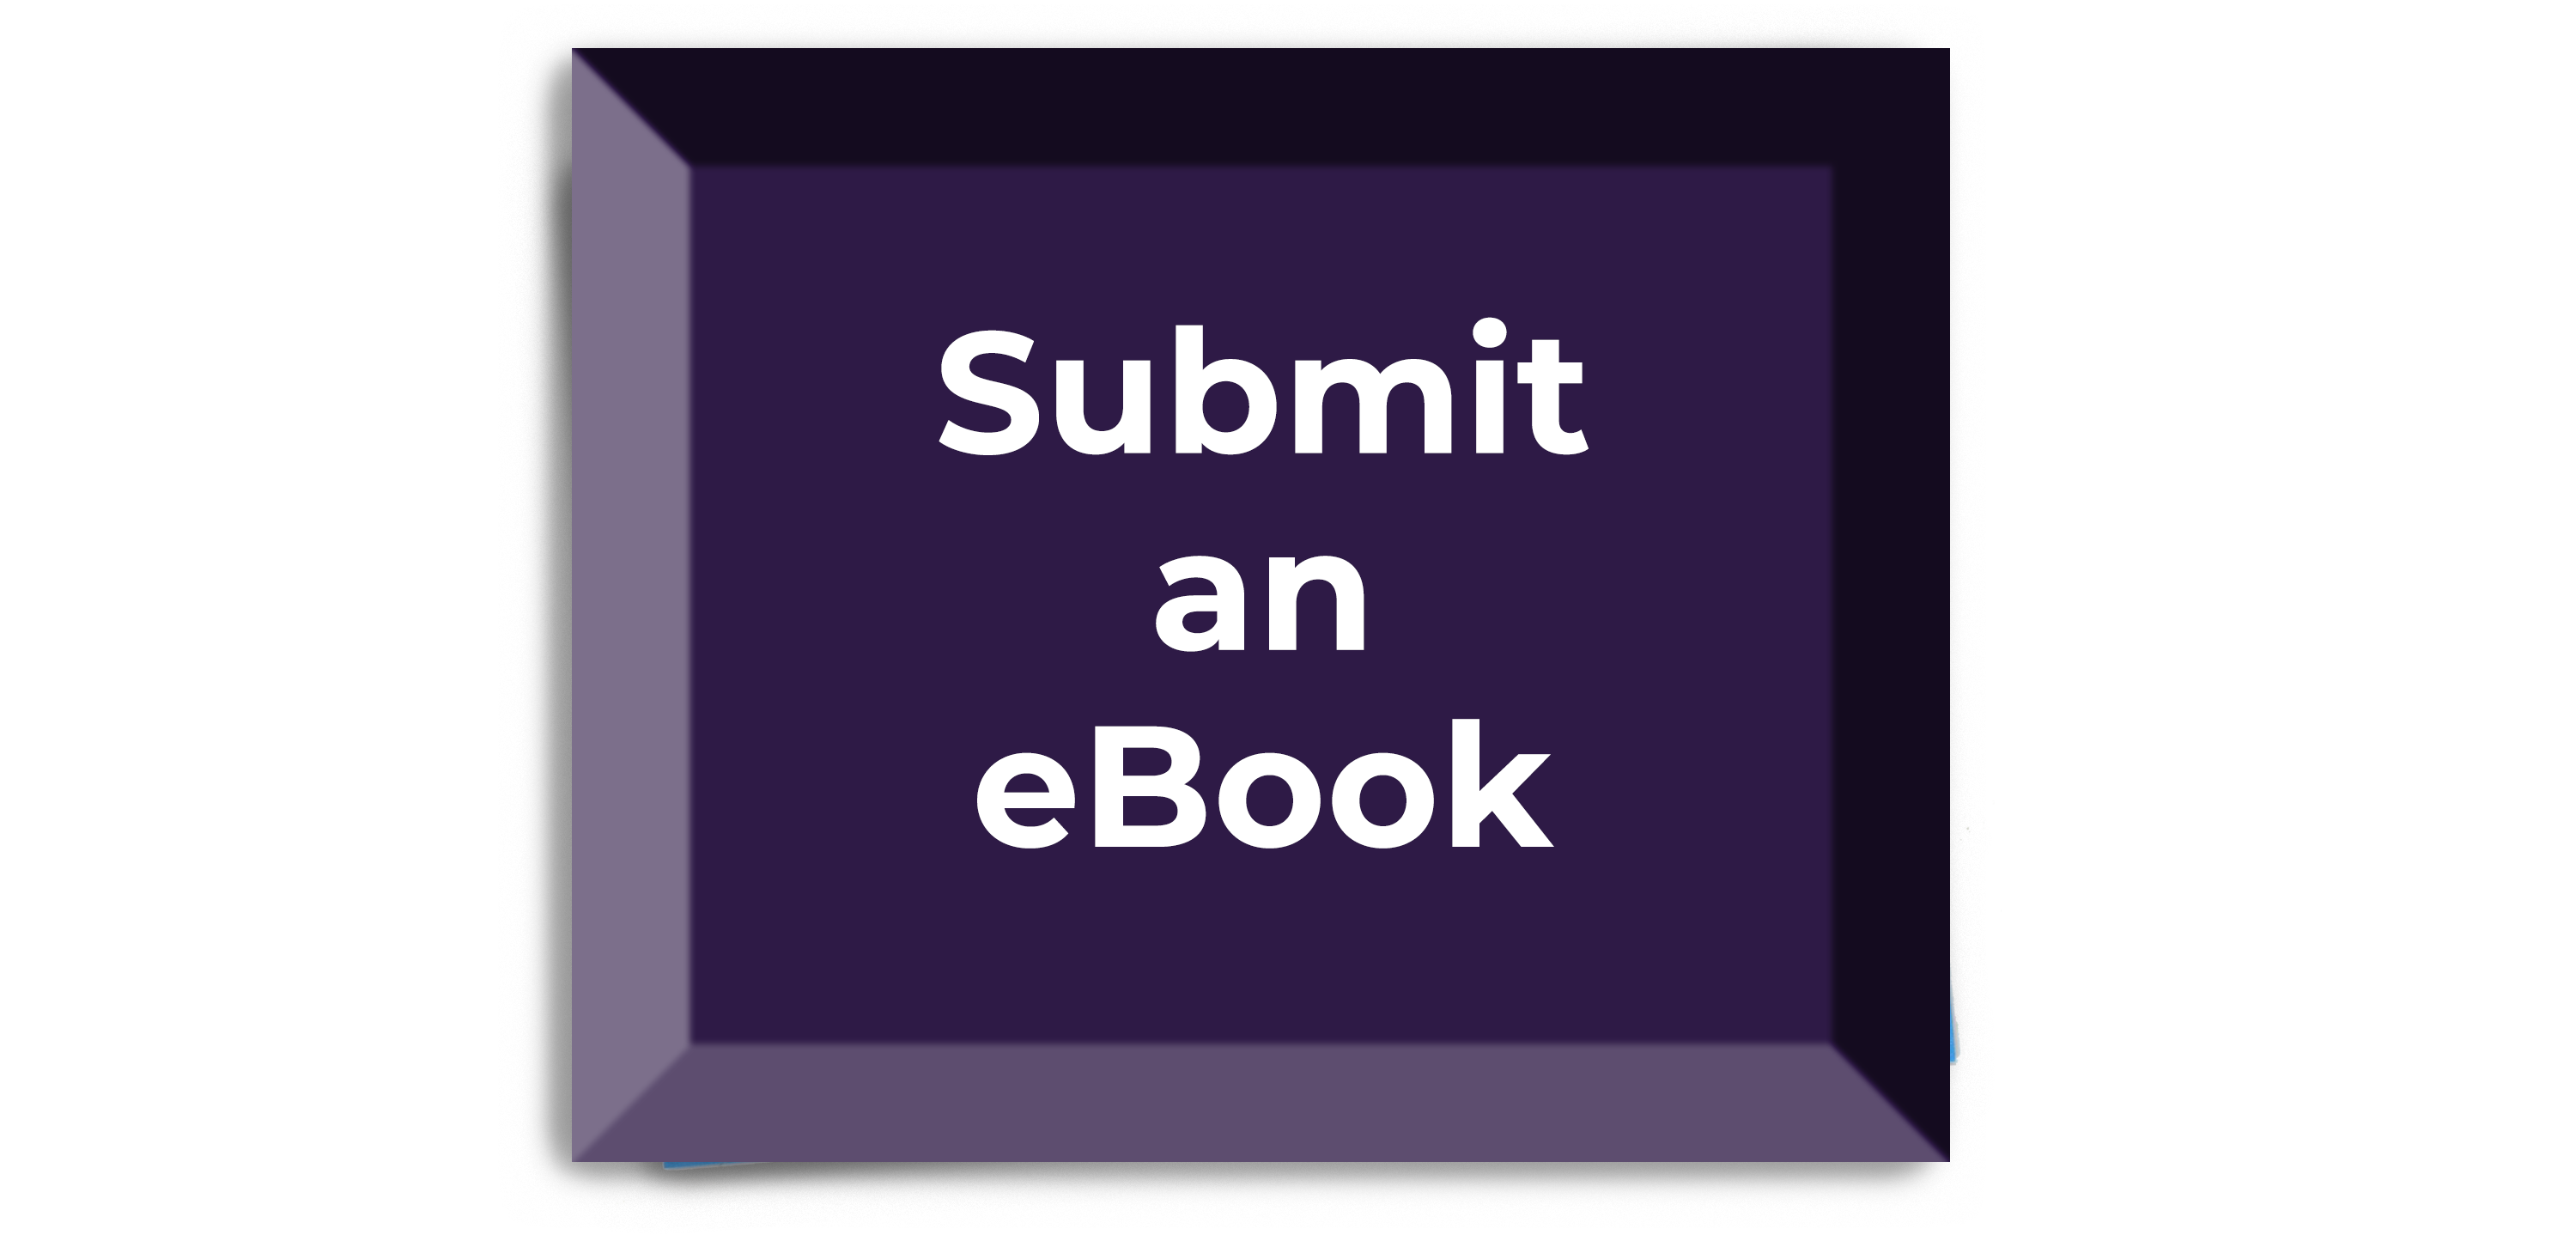 Submit an eBook